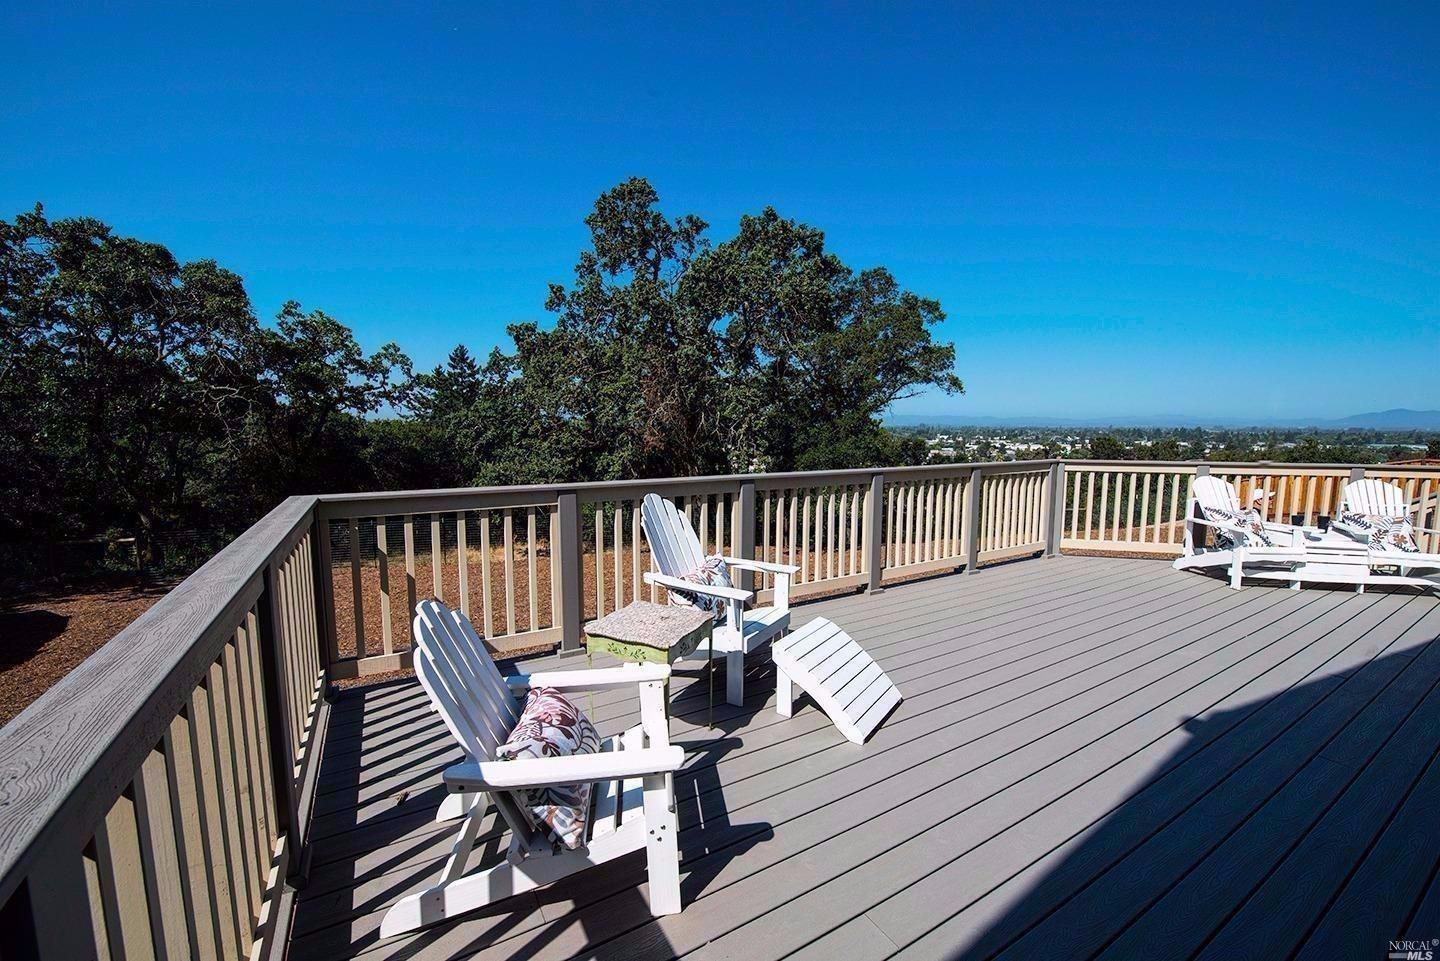 3389 Lake Park court Santa Rosa, CA 95403 - MLS #: 21714892